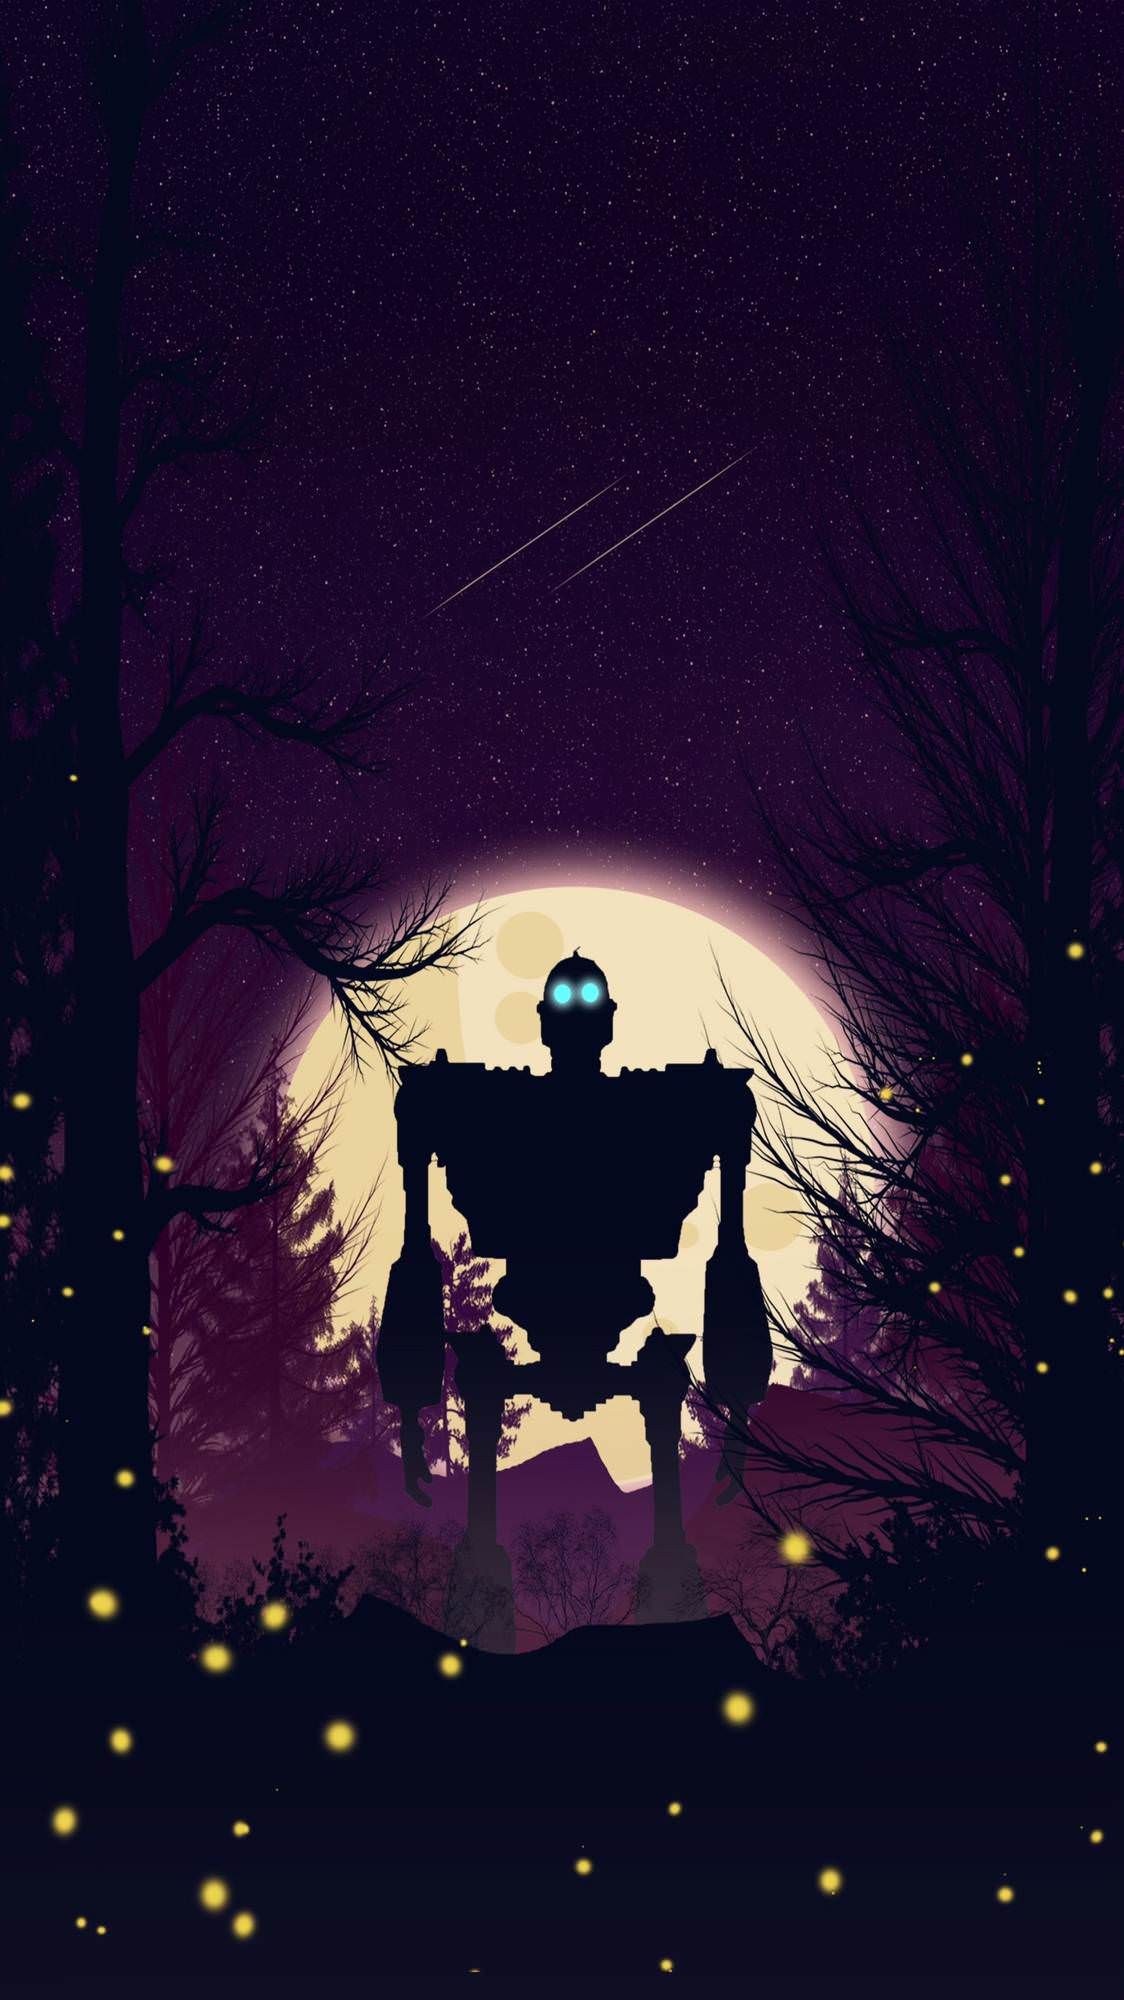 Iron Giant By Aartliner Cool Evil Wallpapers The Iron Giant